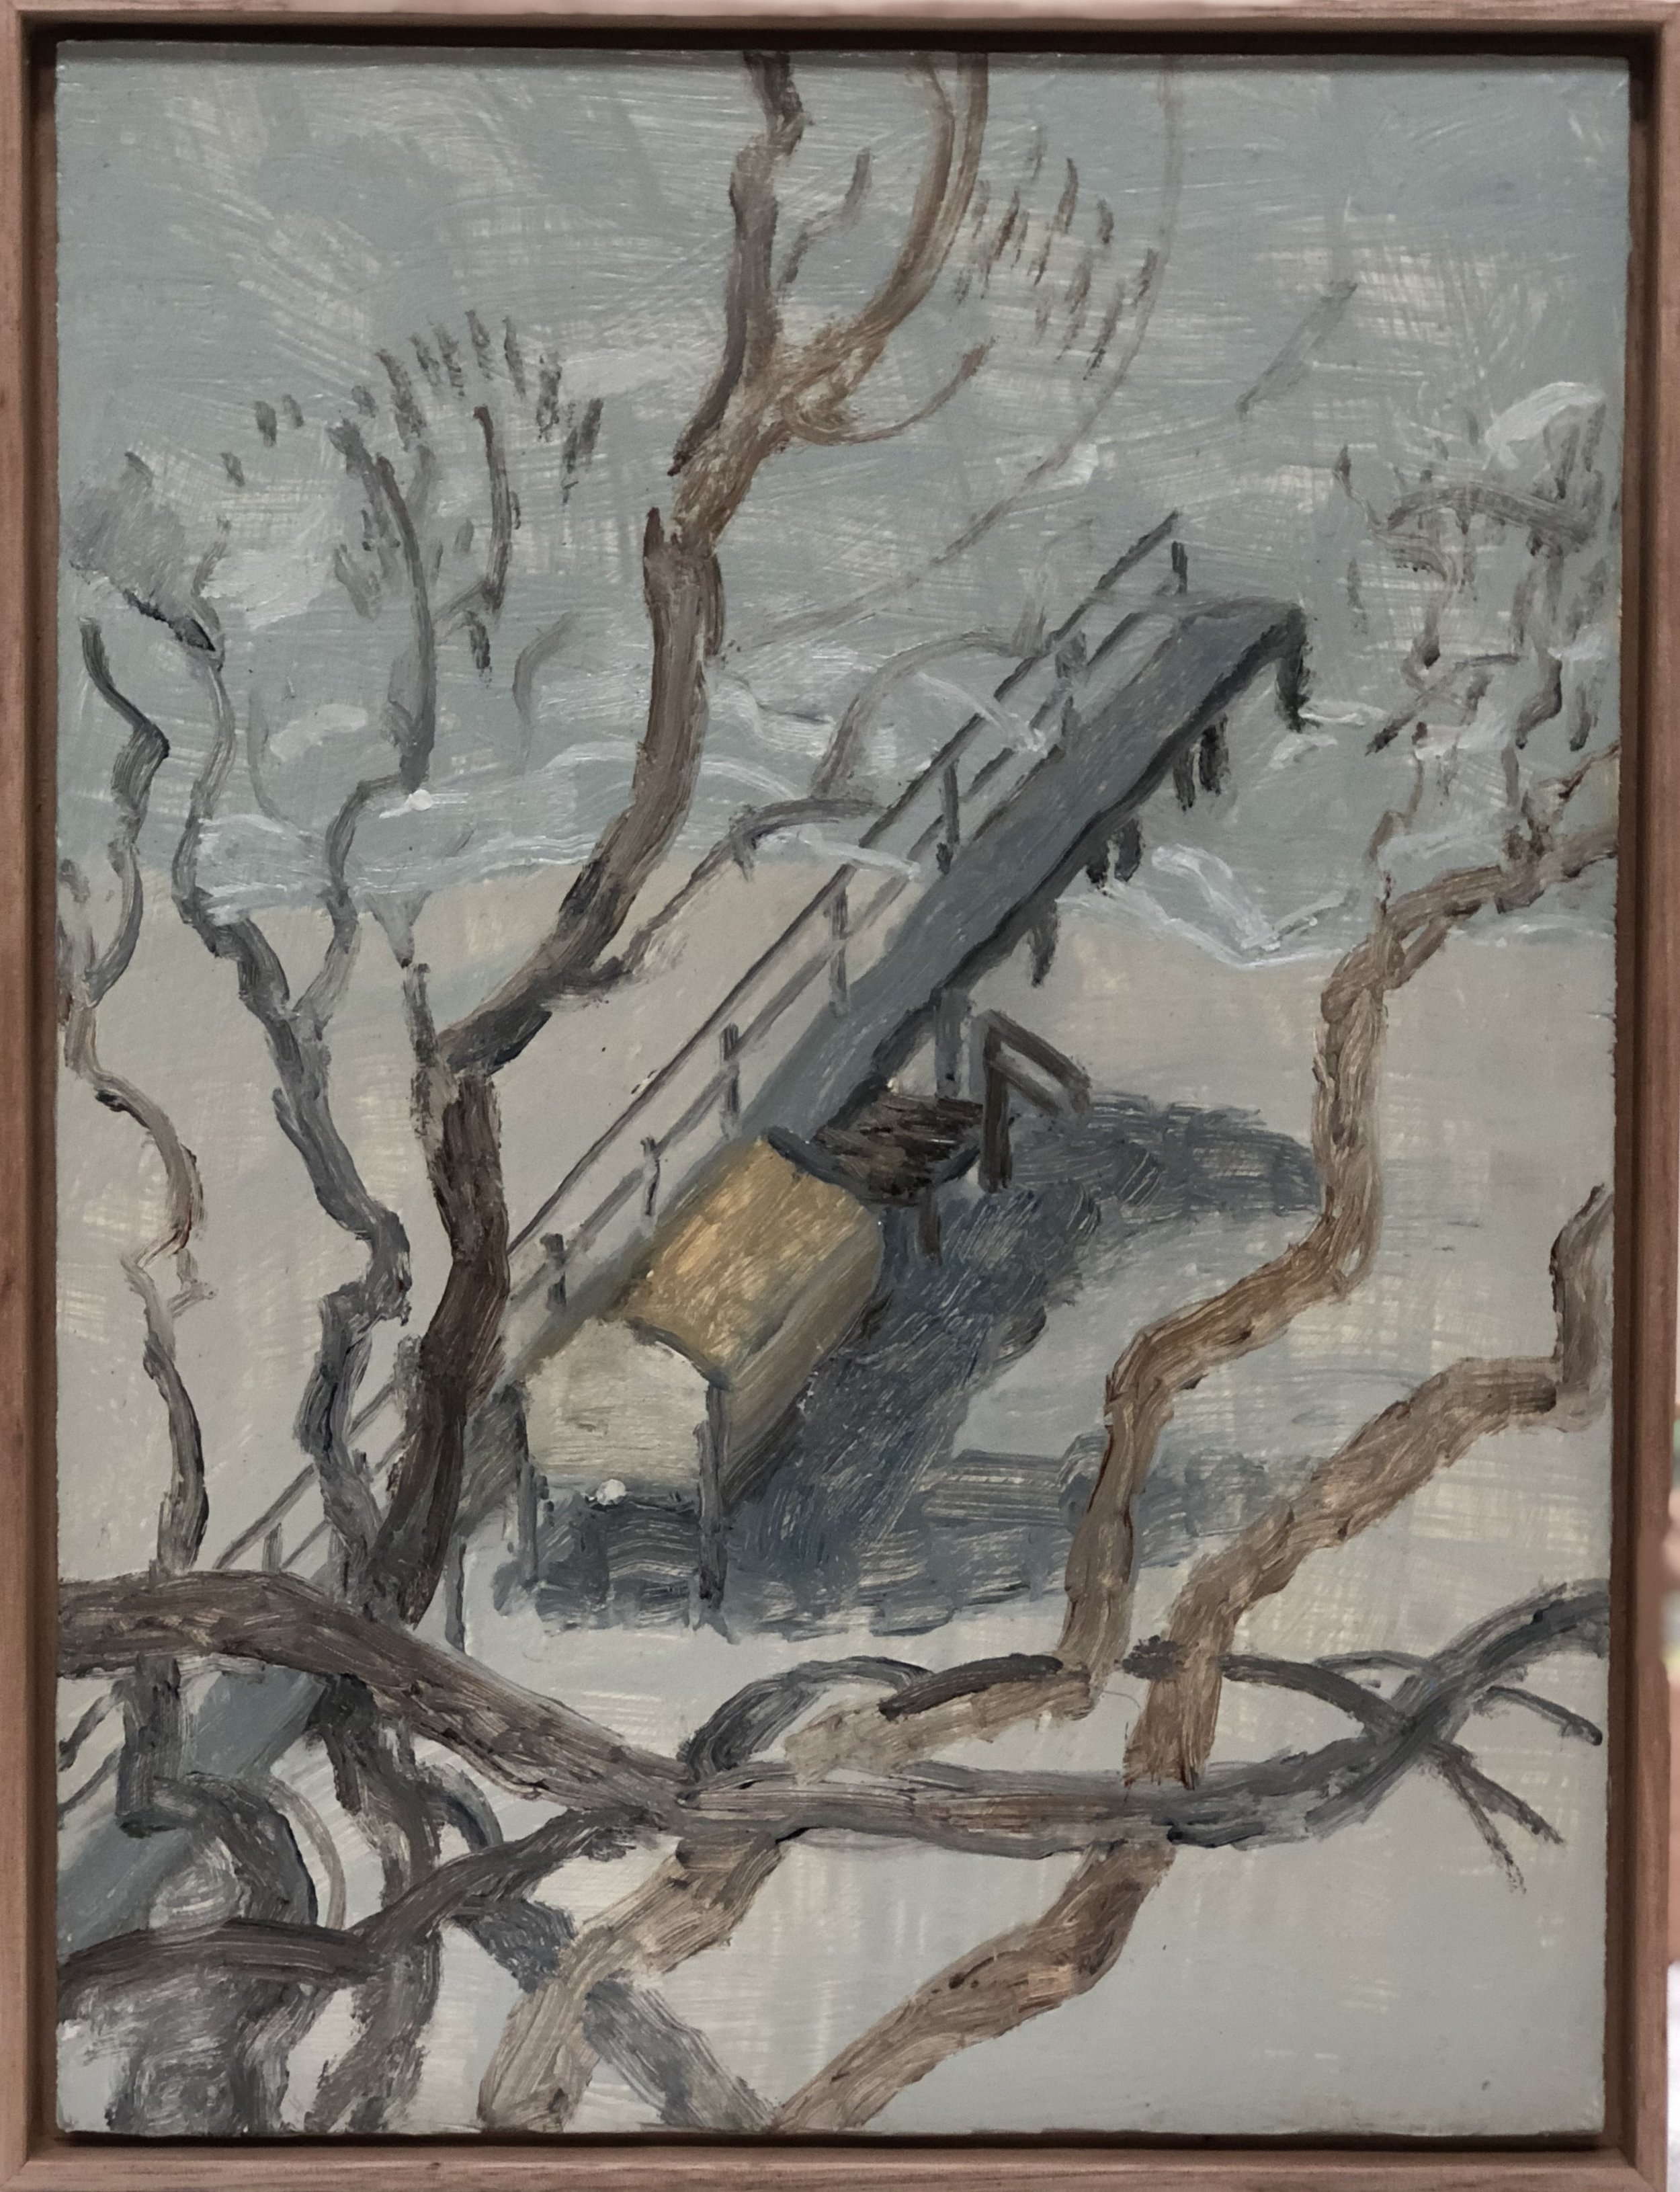 13. Paul Maher Boasted through trees 2017 oil on canvas 31 x 24.5cm framed $350.00